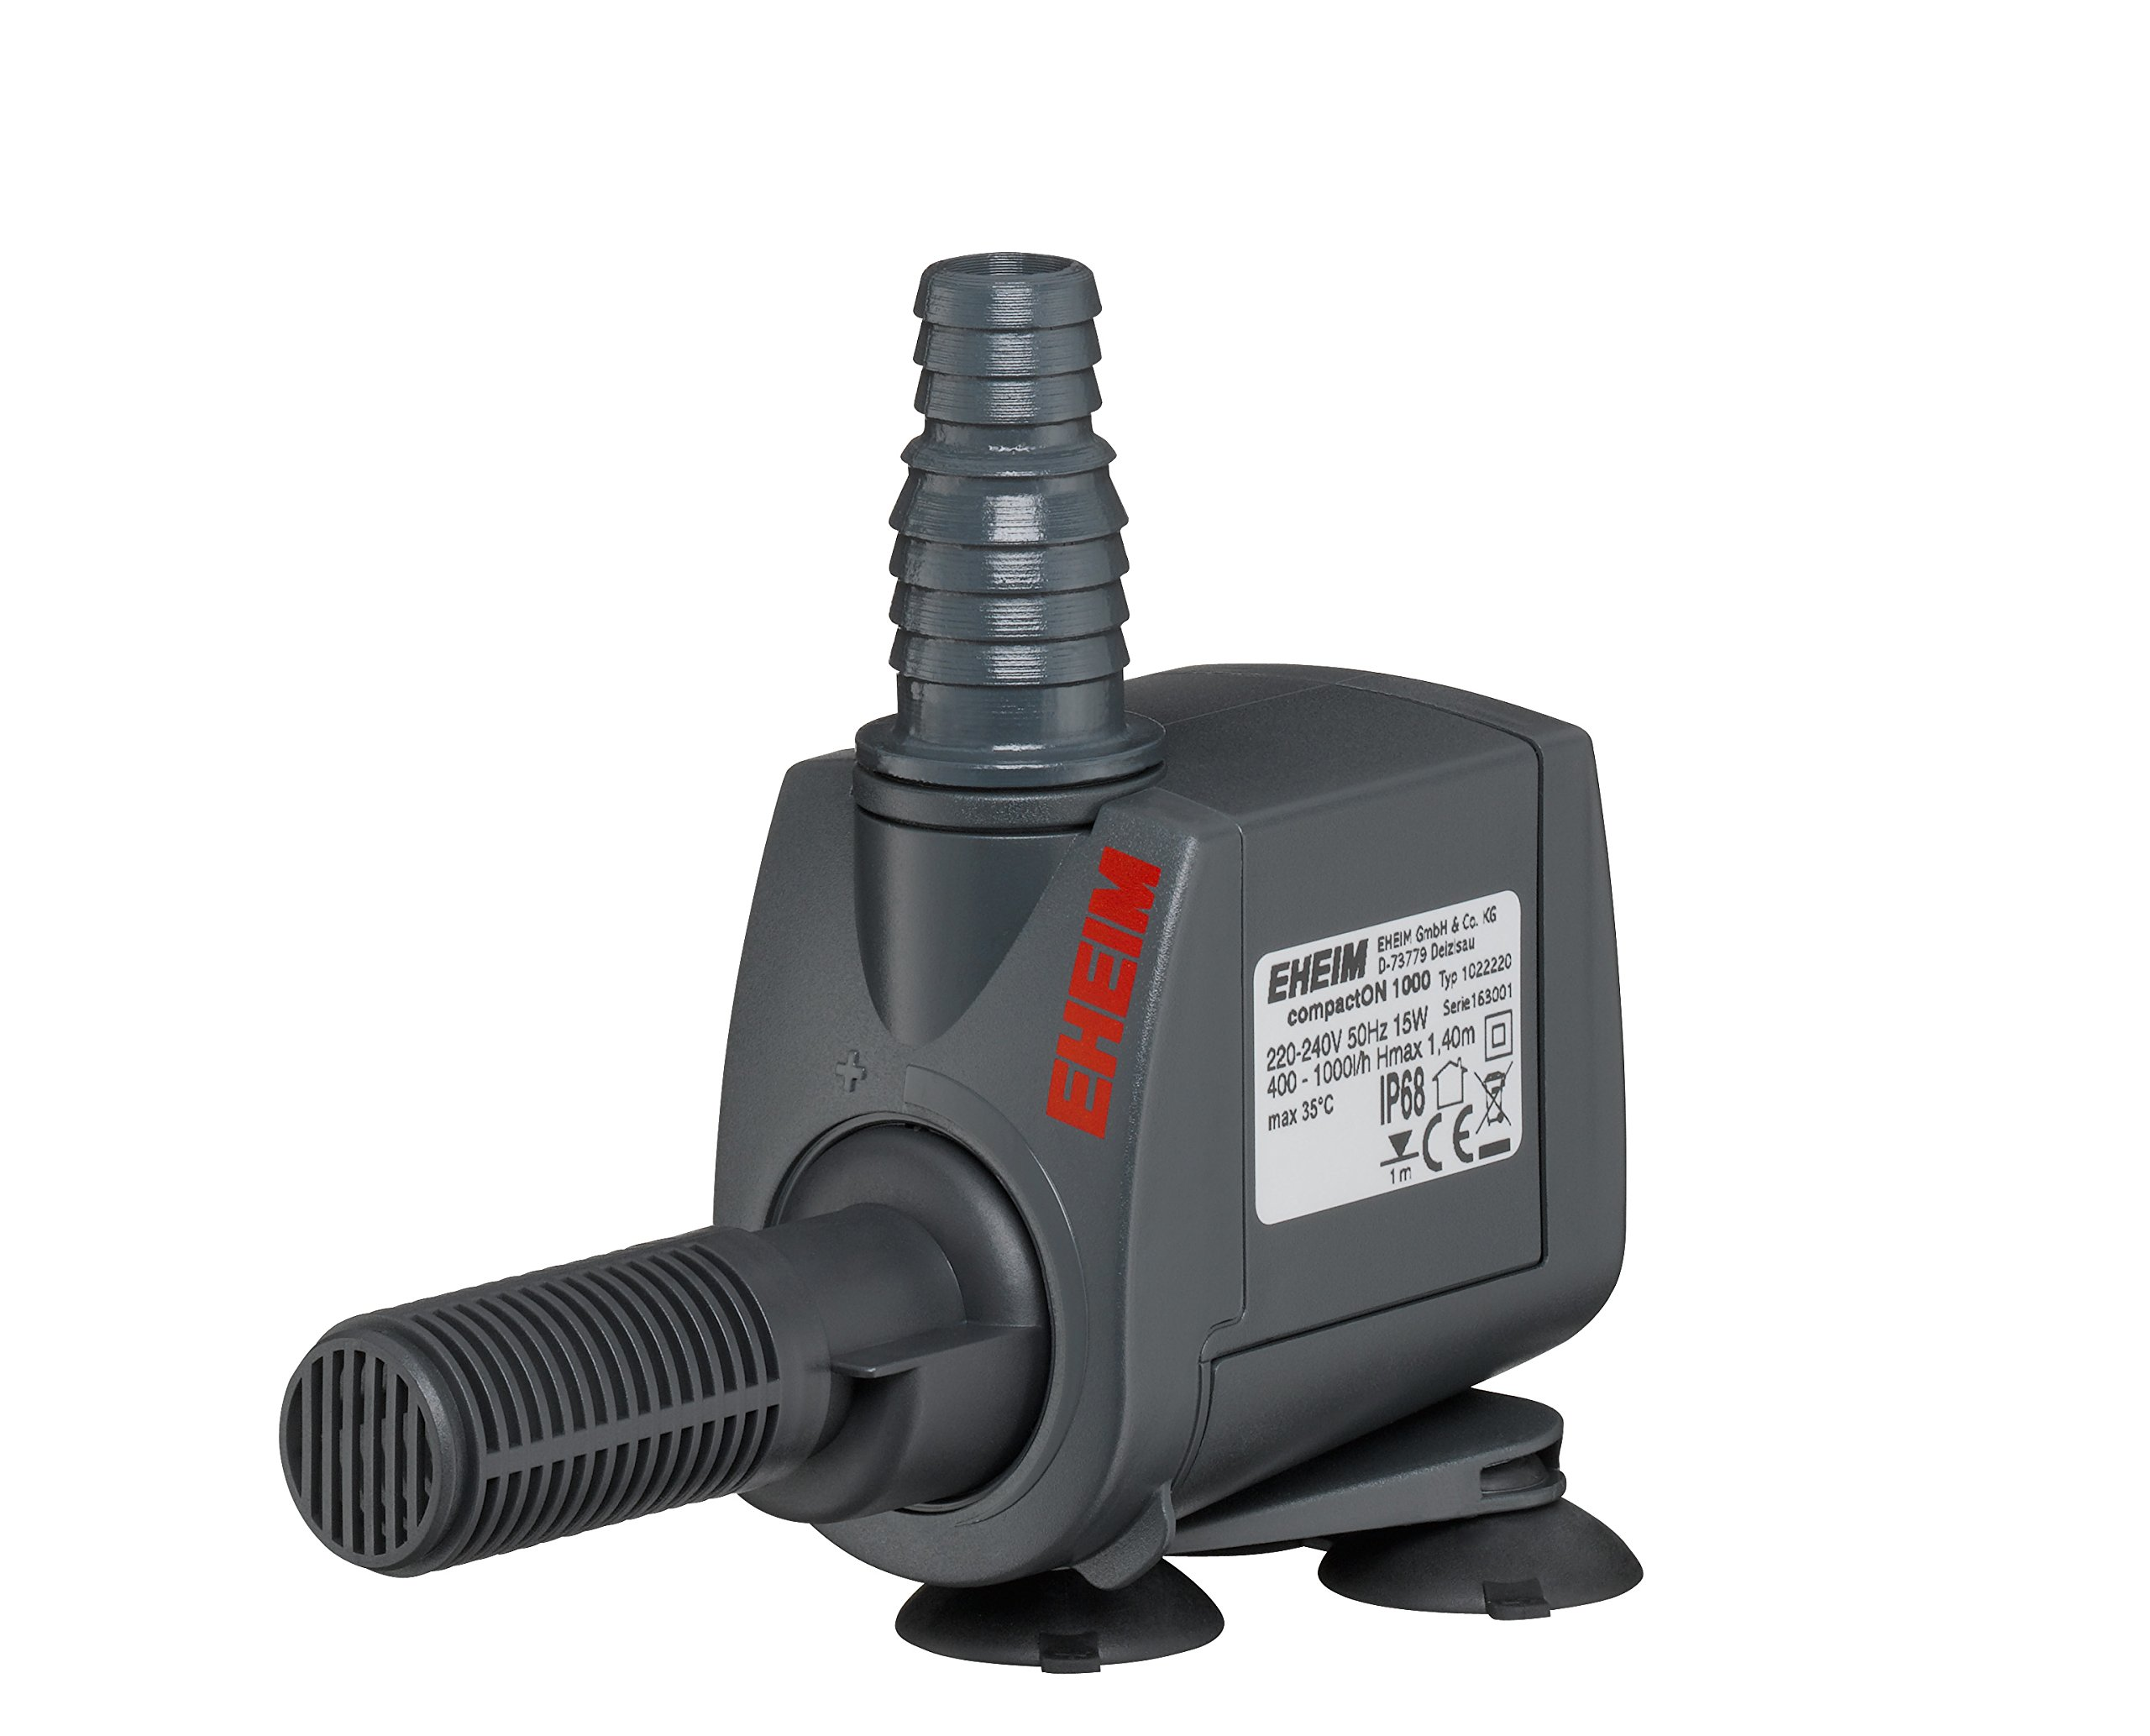 Eheim compactON Aquarium Pump - 1000 by Eheim